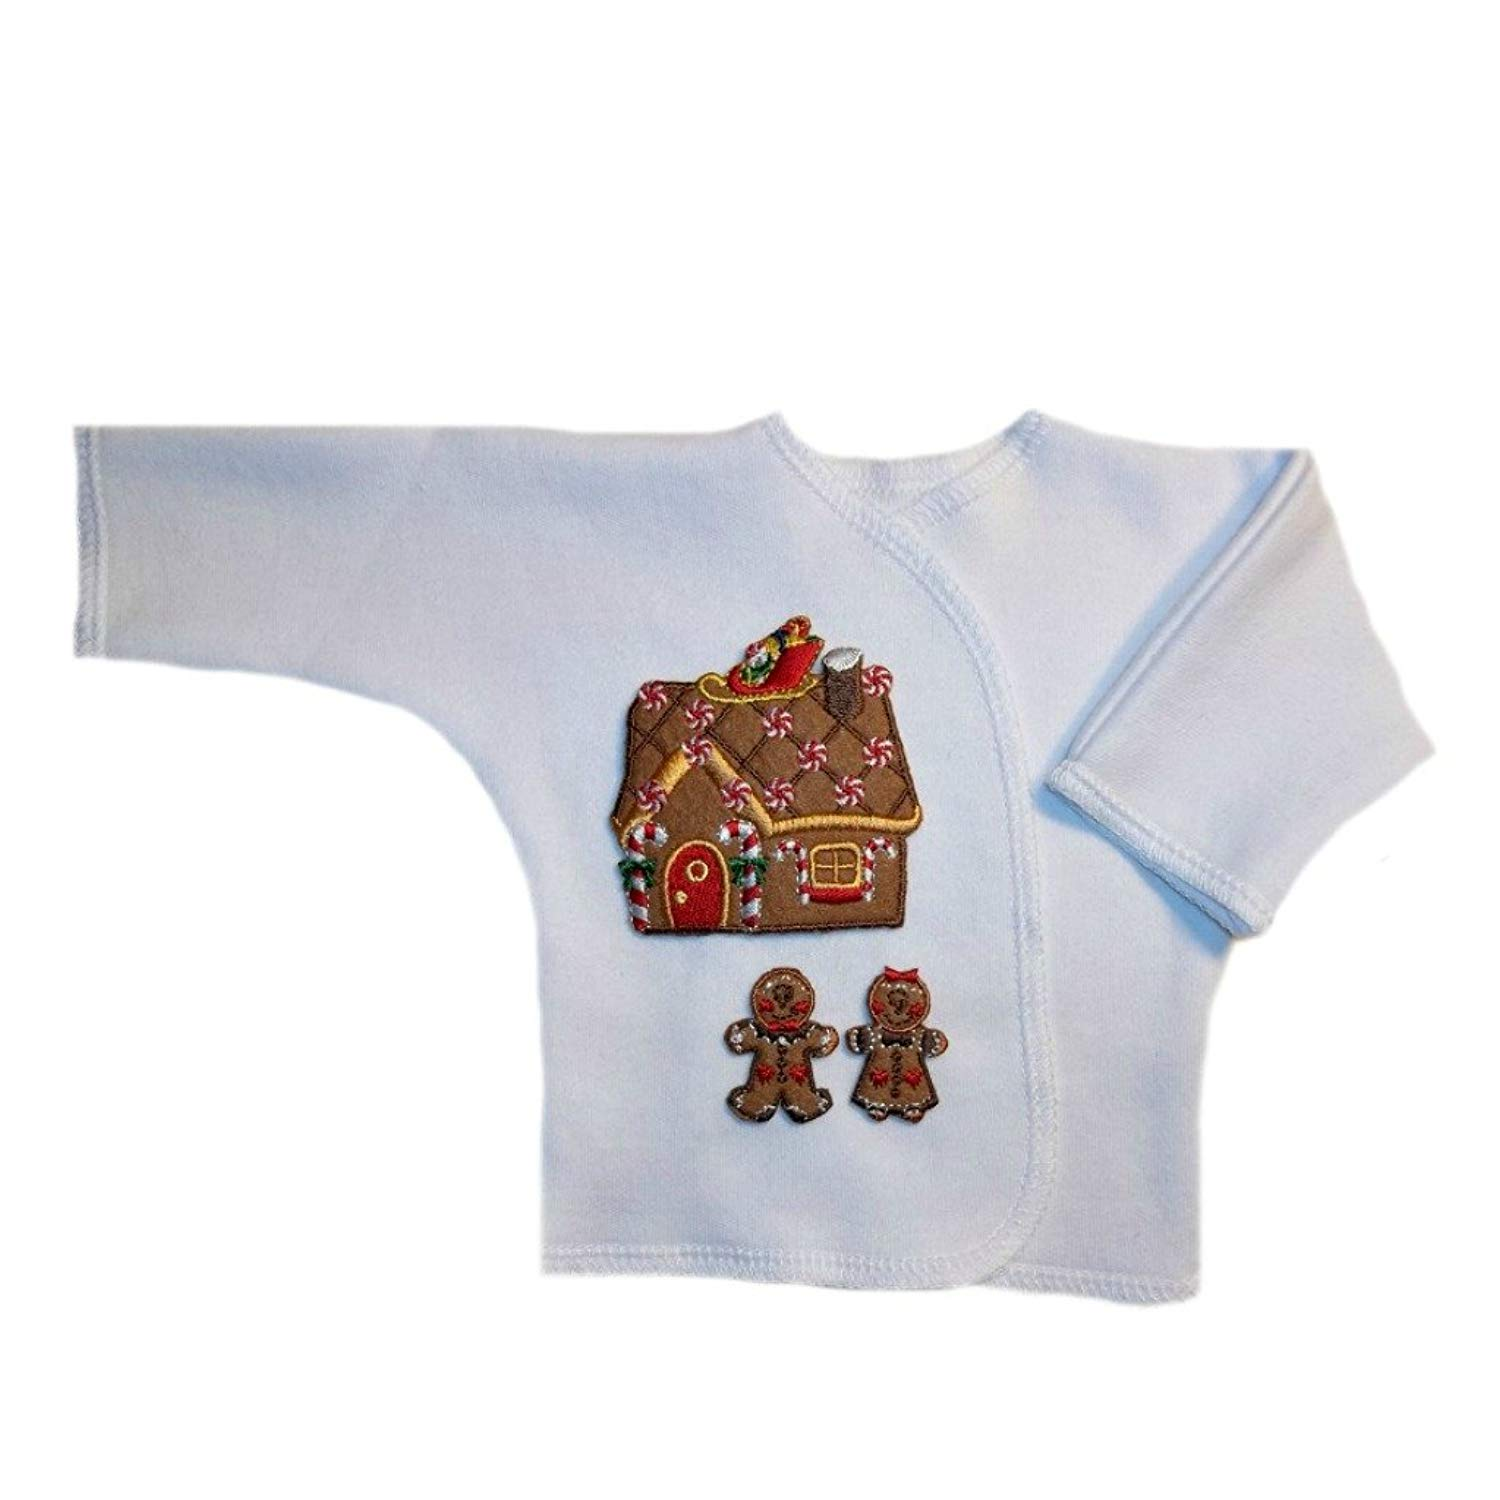 0cfe17bbf669 Cheap Gingerbread Shirt, find Gingerbread Shirt deals on line at ...